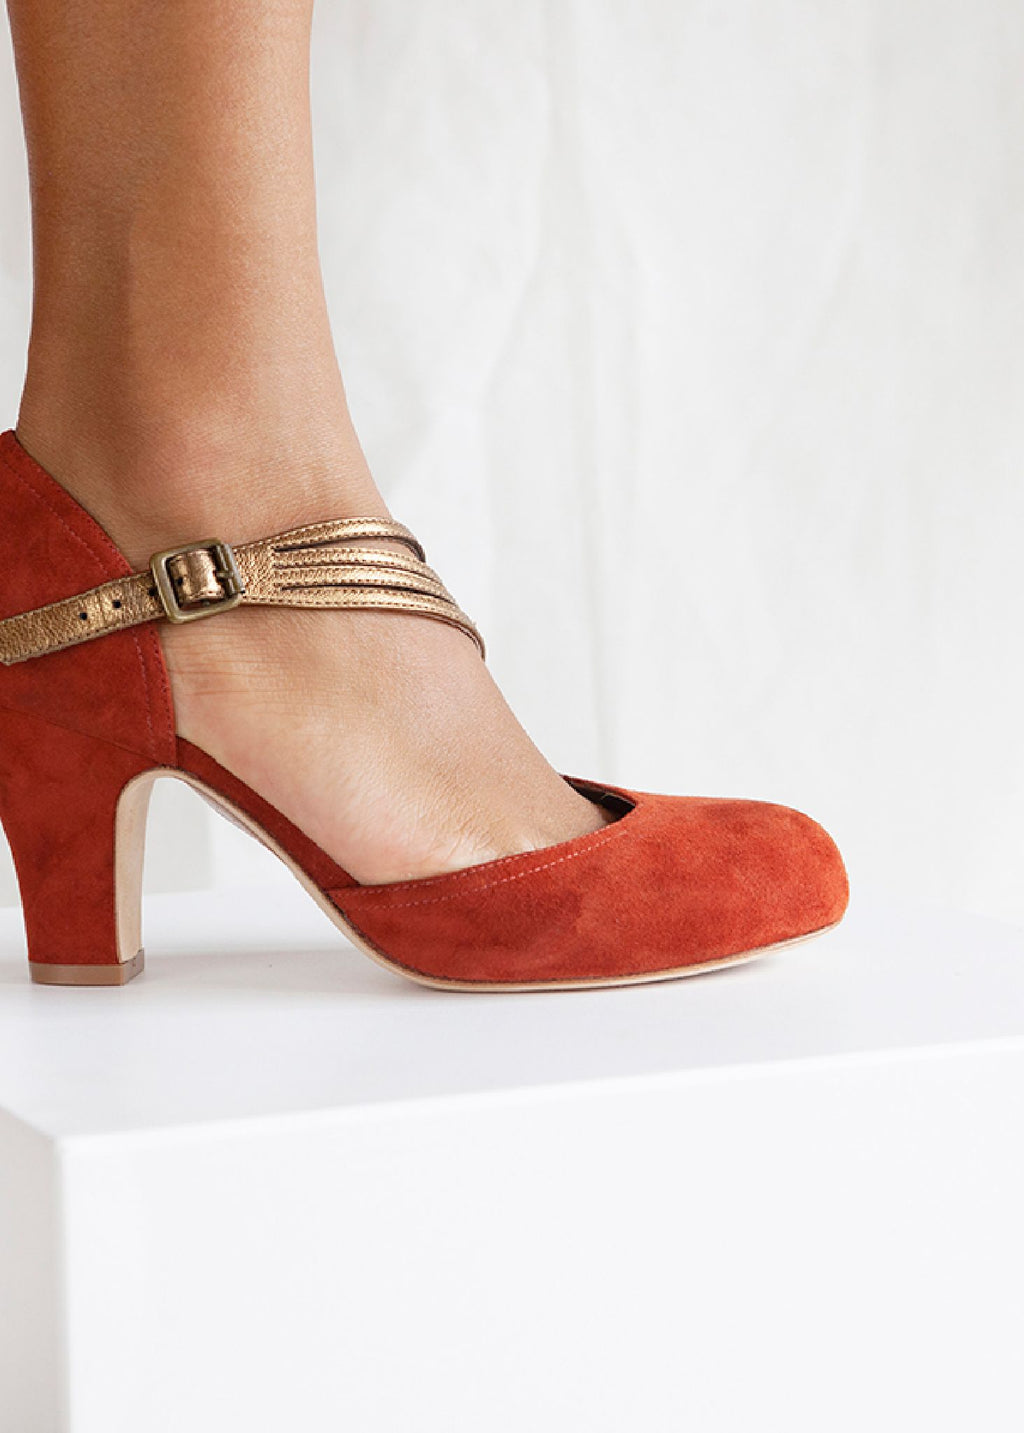 Lana Rust Suede D'orsay Cut Pump With Asymmetric Bronze Strap.